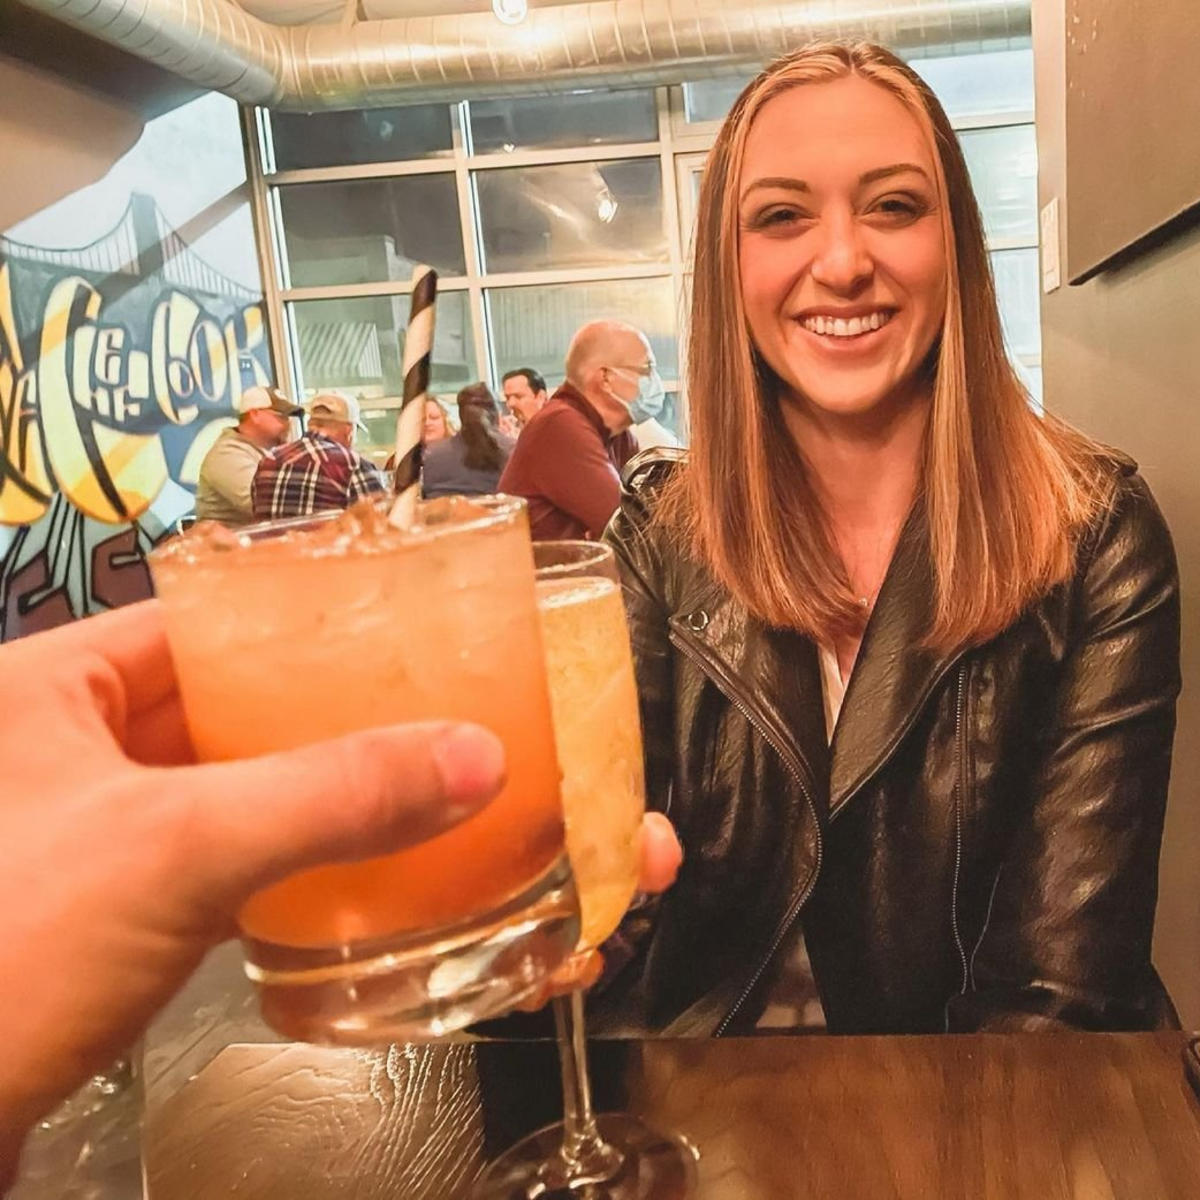 Cheers to a tasty evening at Father Fats in Downtown Stevens Point